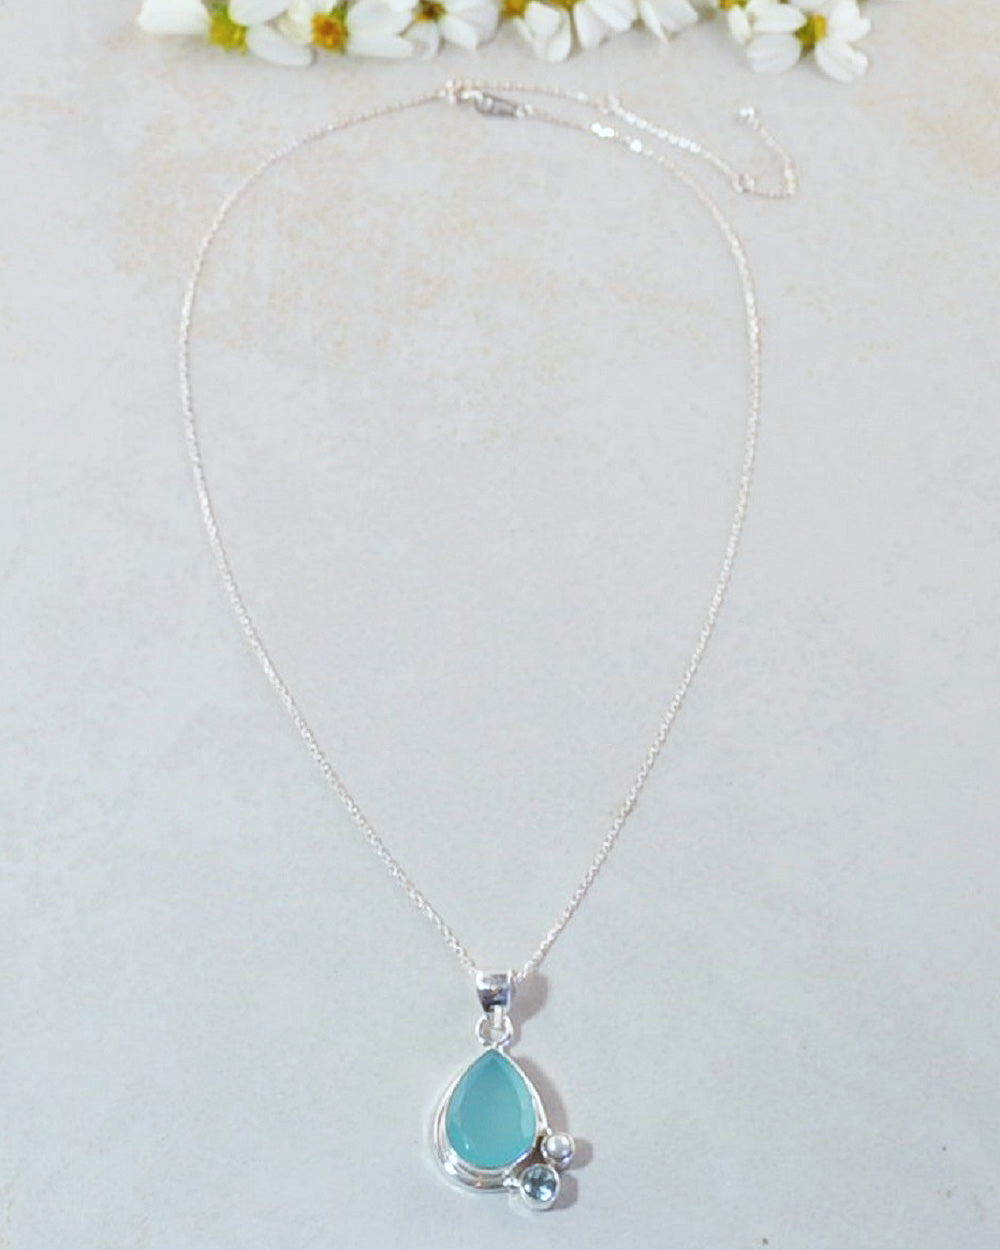 Mantra Peruvian Opal 925 Sterling Silver Pendant Necklace